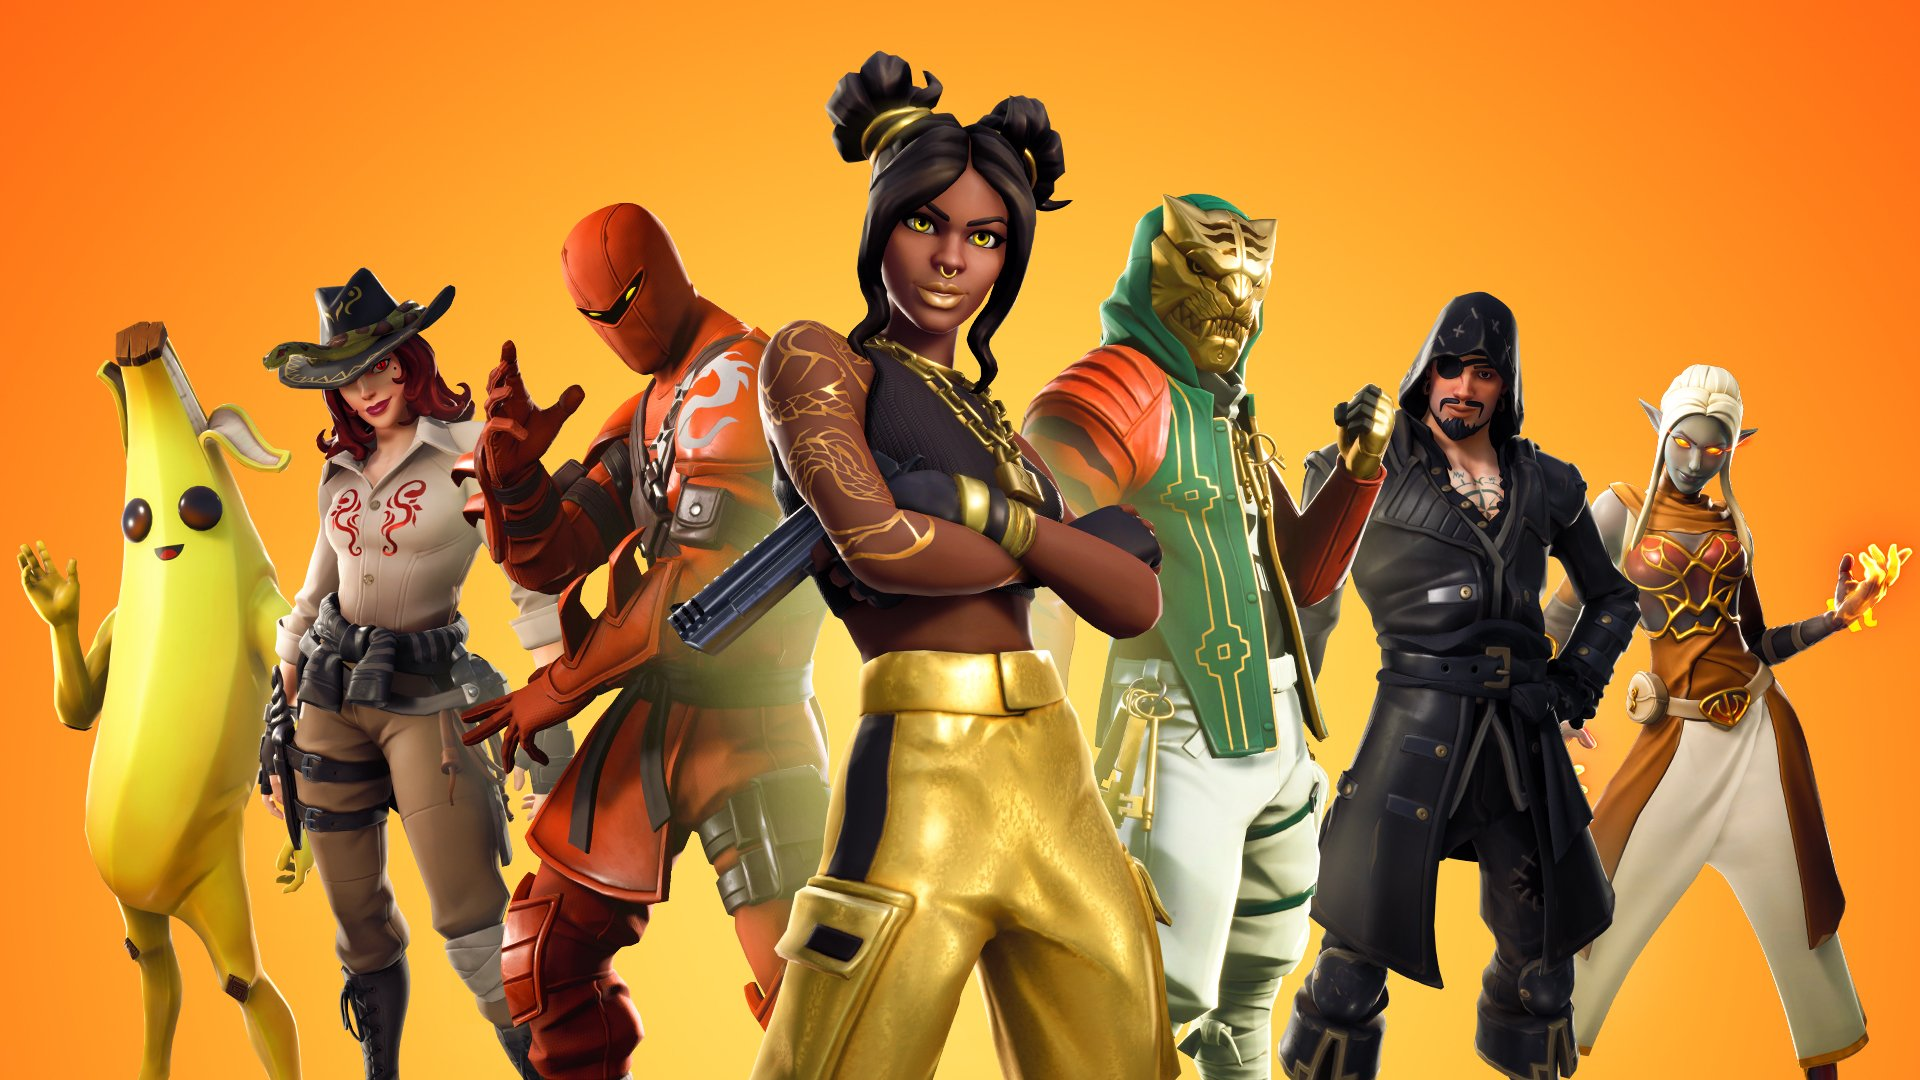 Fortnite Season 8 Skins HD Background 4563 Wallpapers and 1920x1080